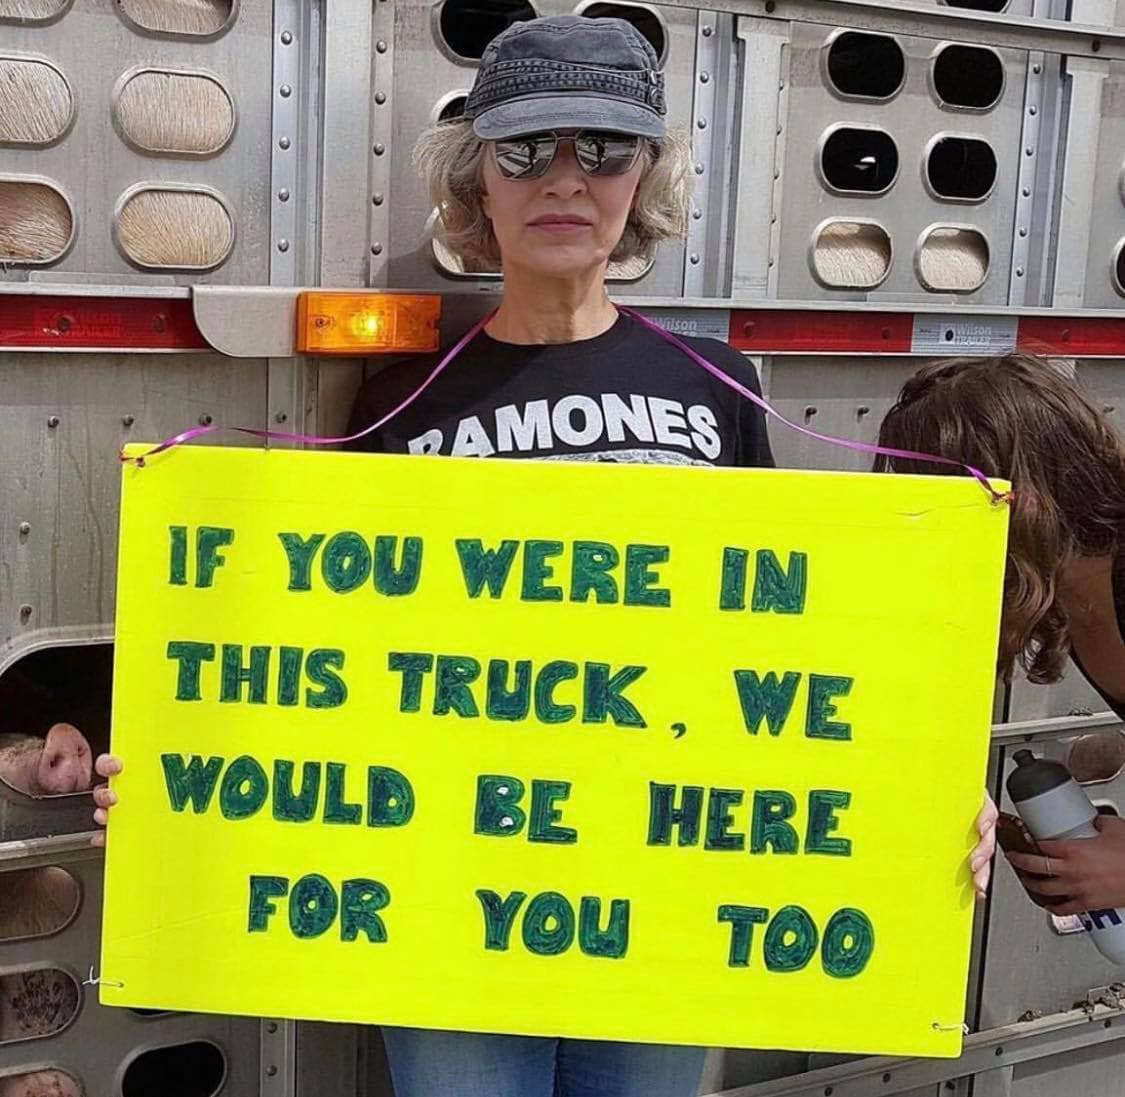 Regan Russell - If you were in this truck, we would be there for you too.